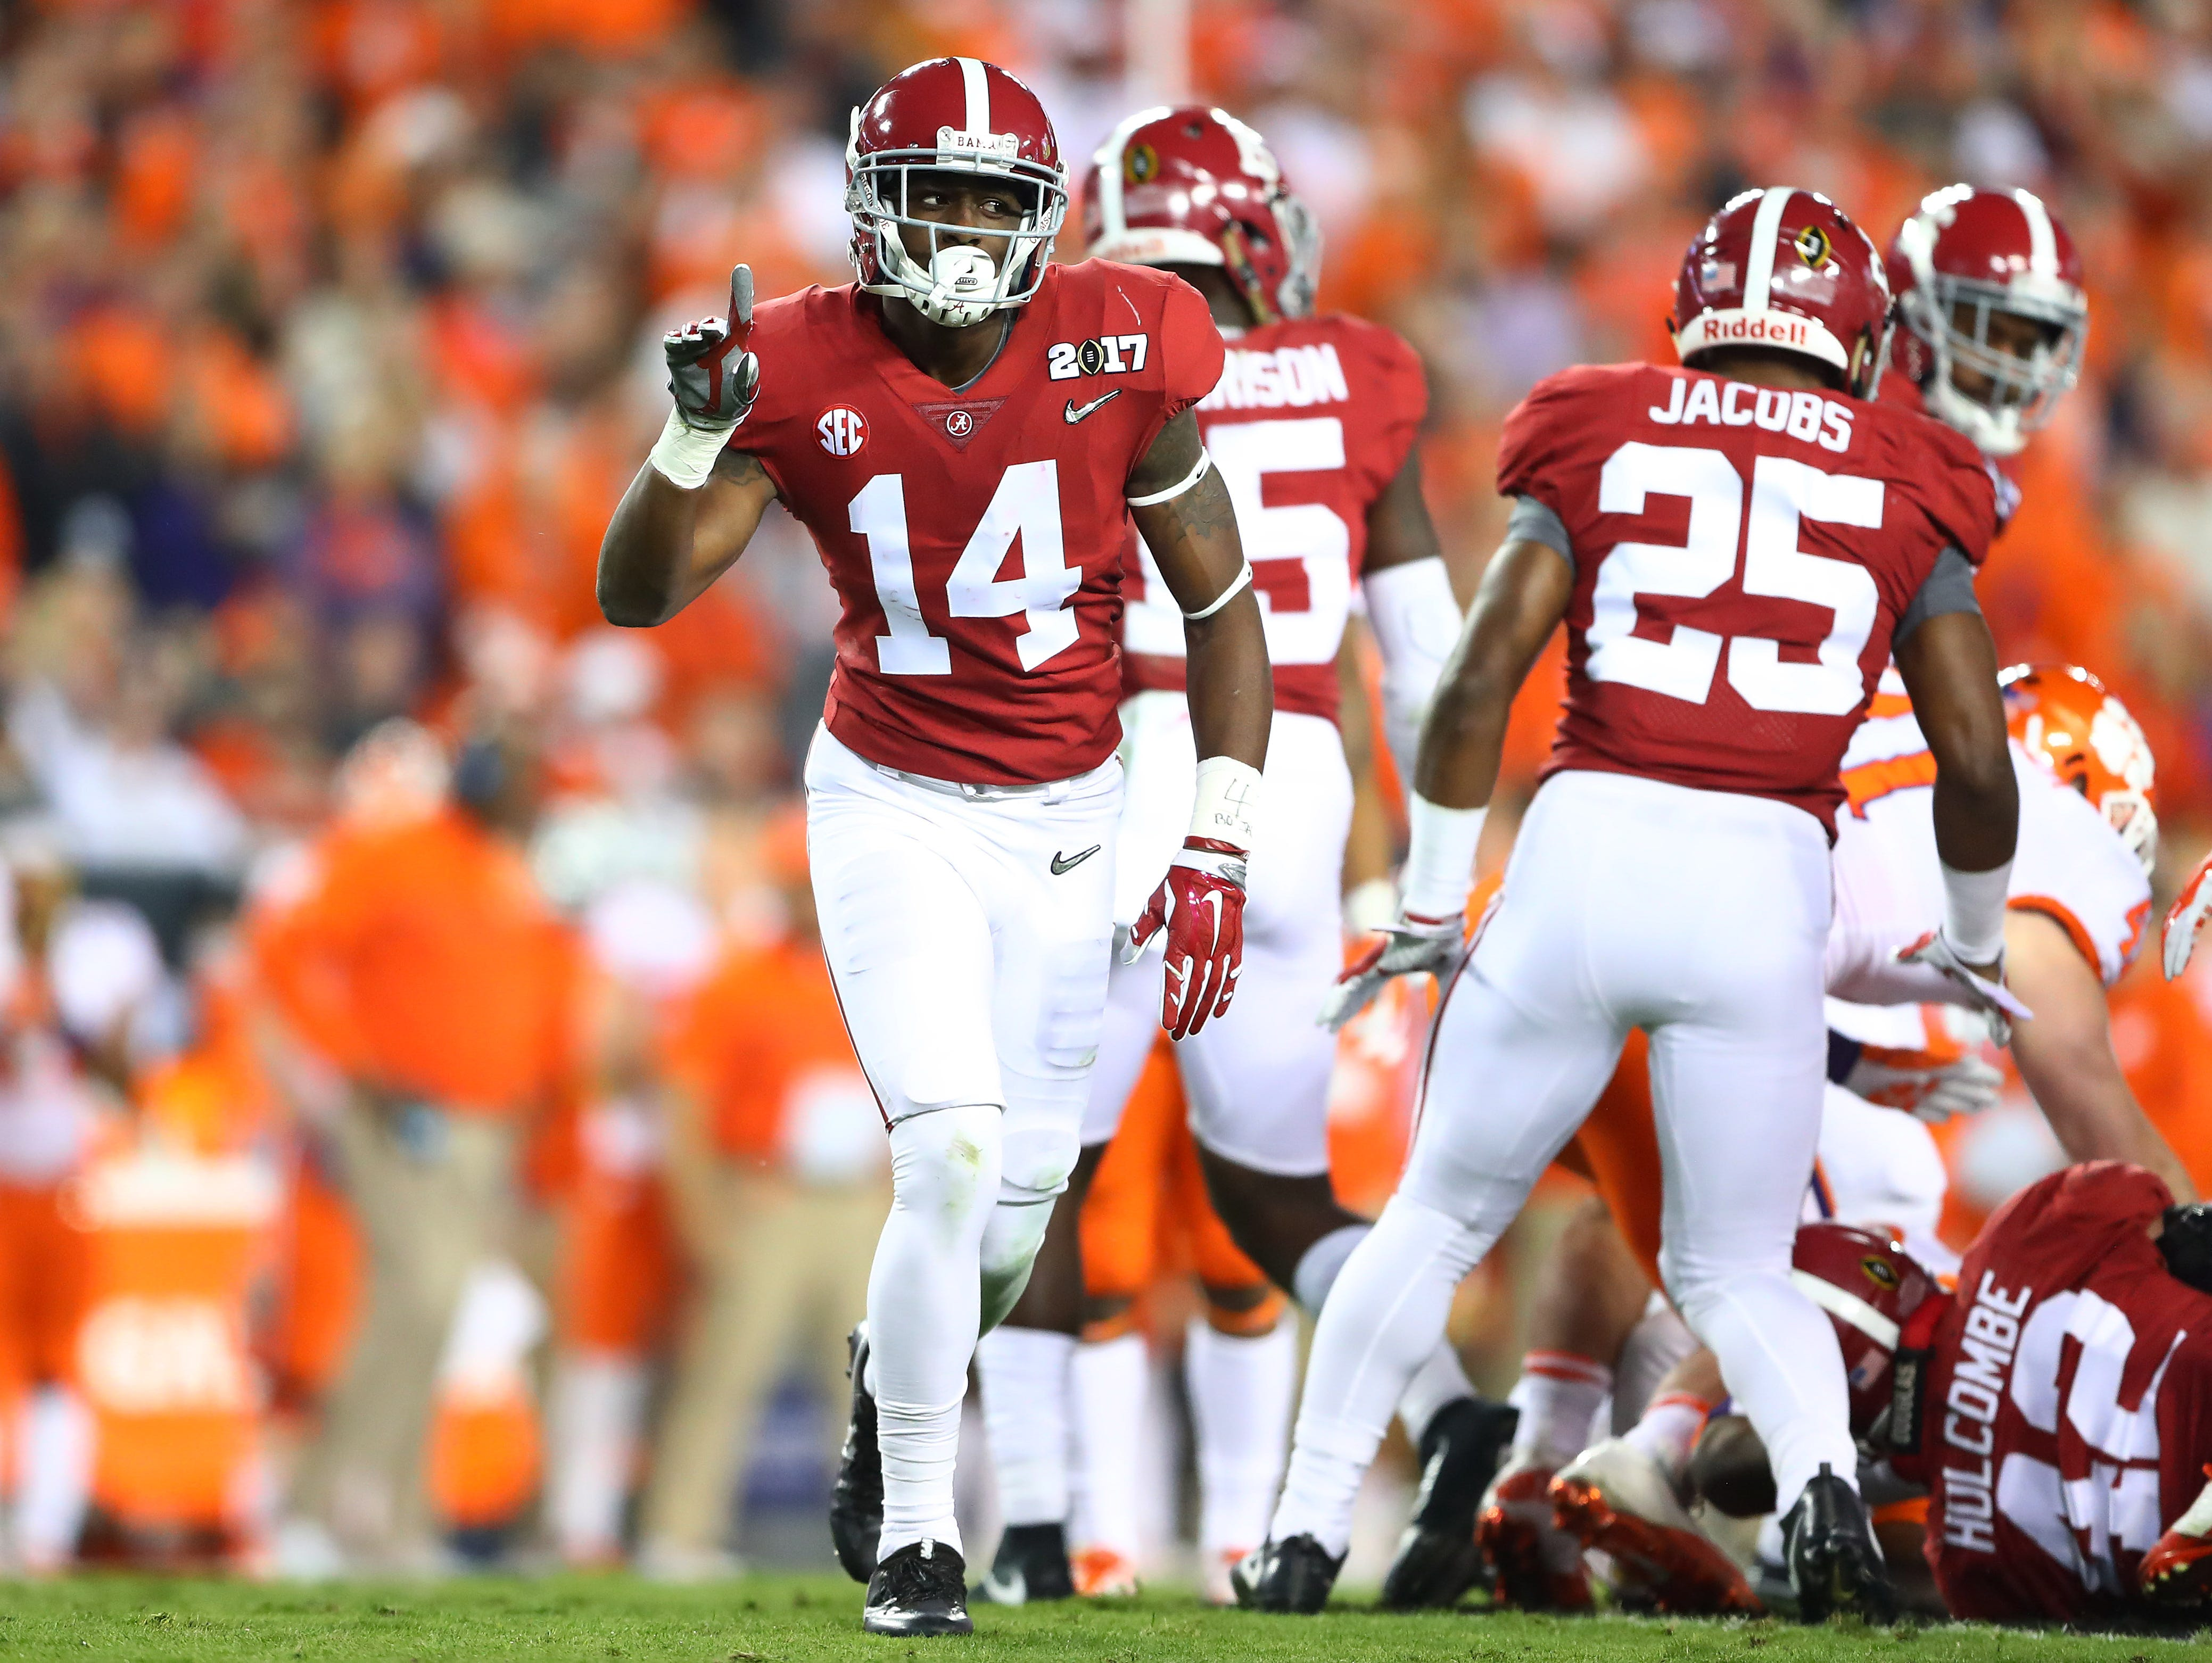 Alabama Crimson Tide defensive back Deionte Thompson (14) reacts after a play during the second quarter against the Clemson Tigers in last season's national championship game.